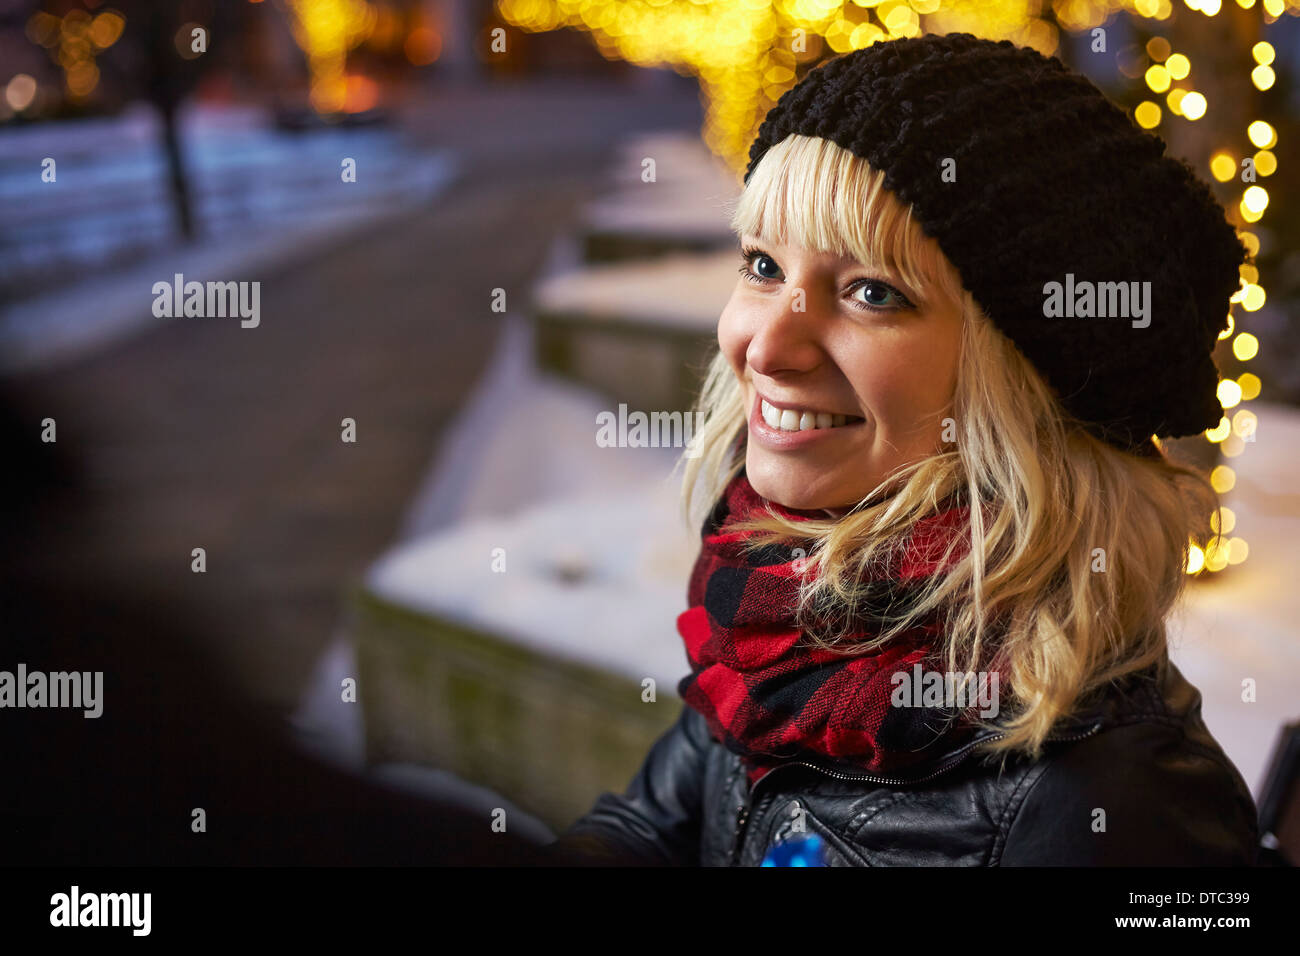 Young woman on city street with xmas lights - Stock Image